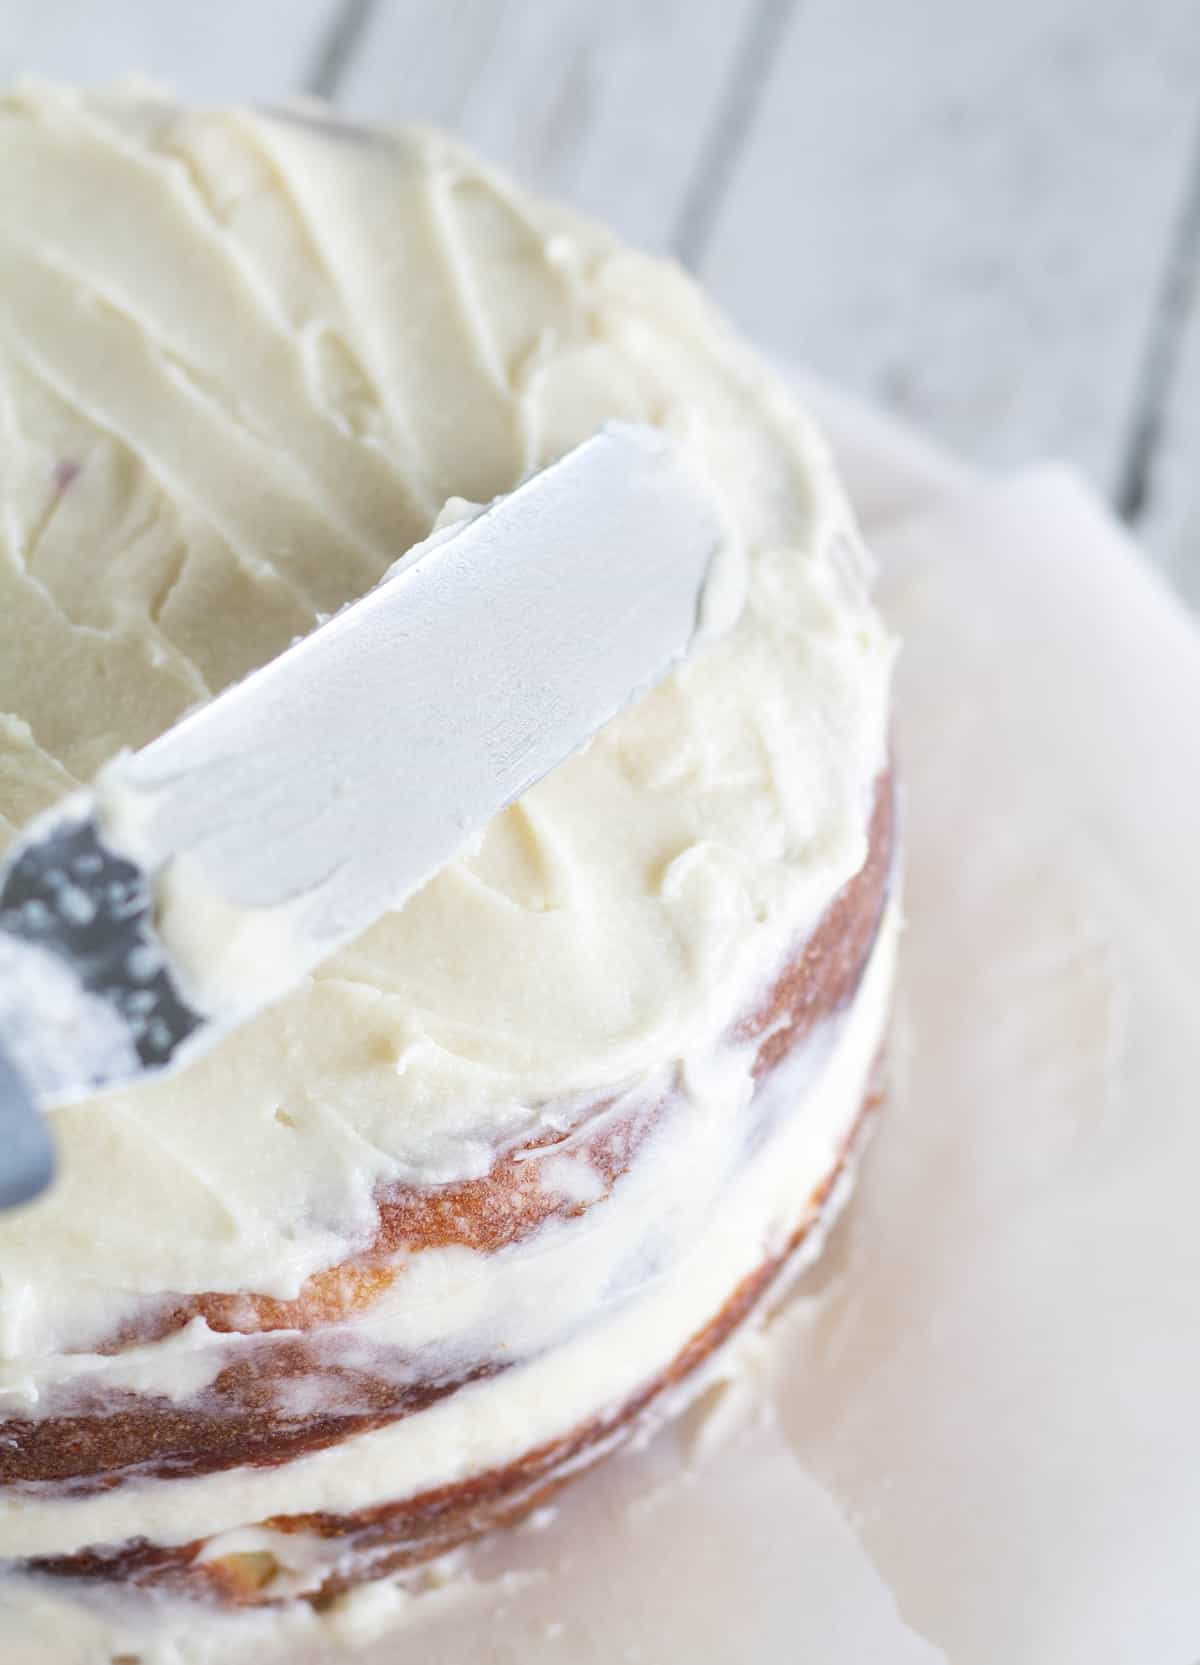 Using a spatula to even out the top edge of the naked cake